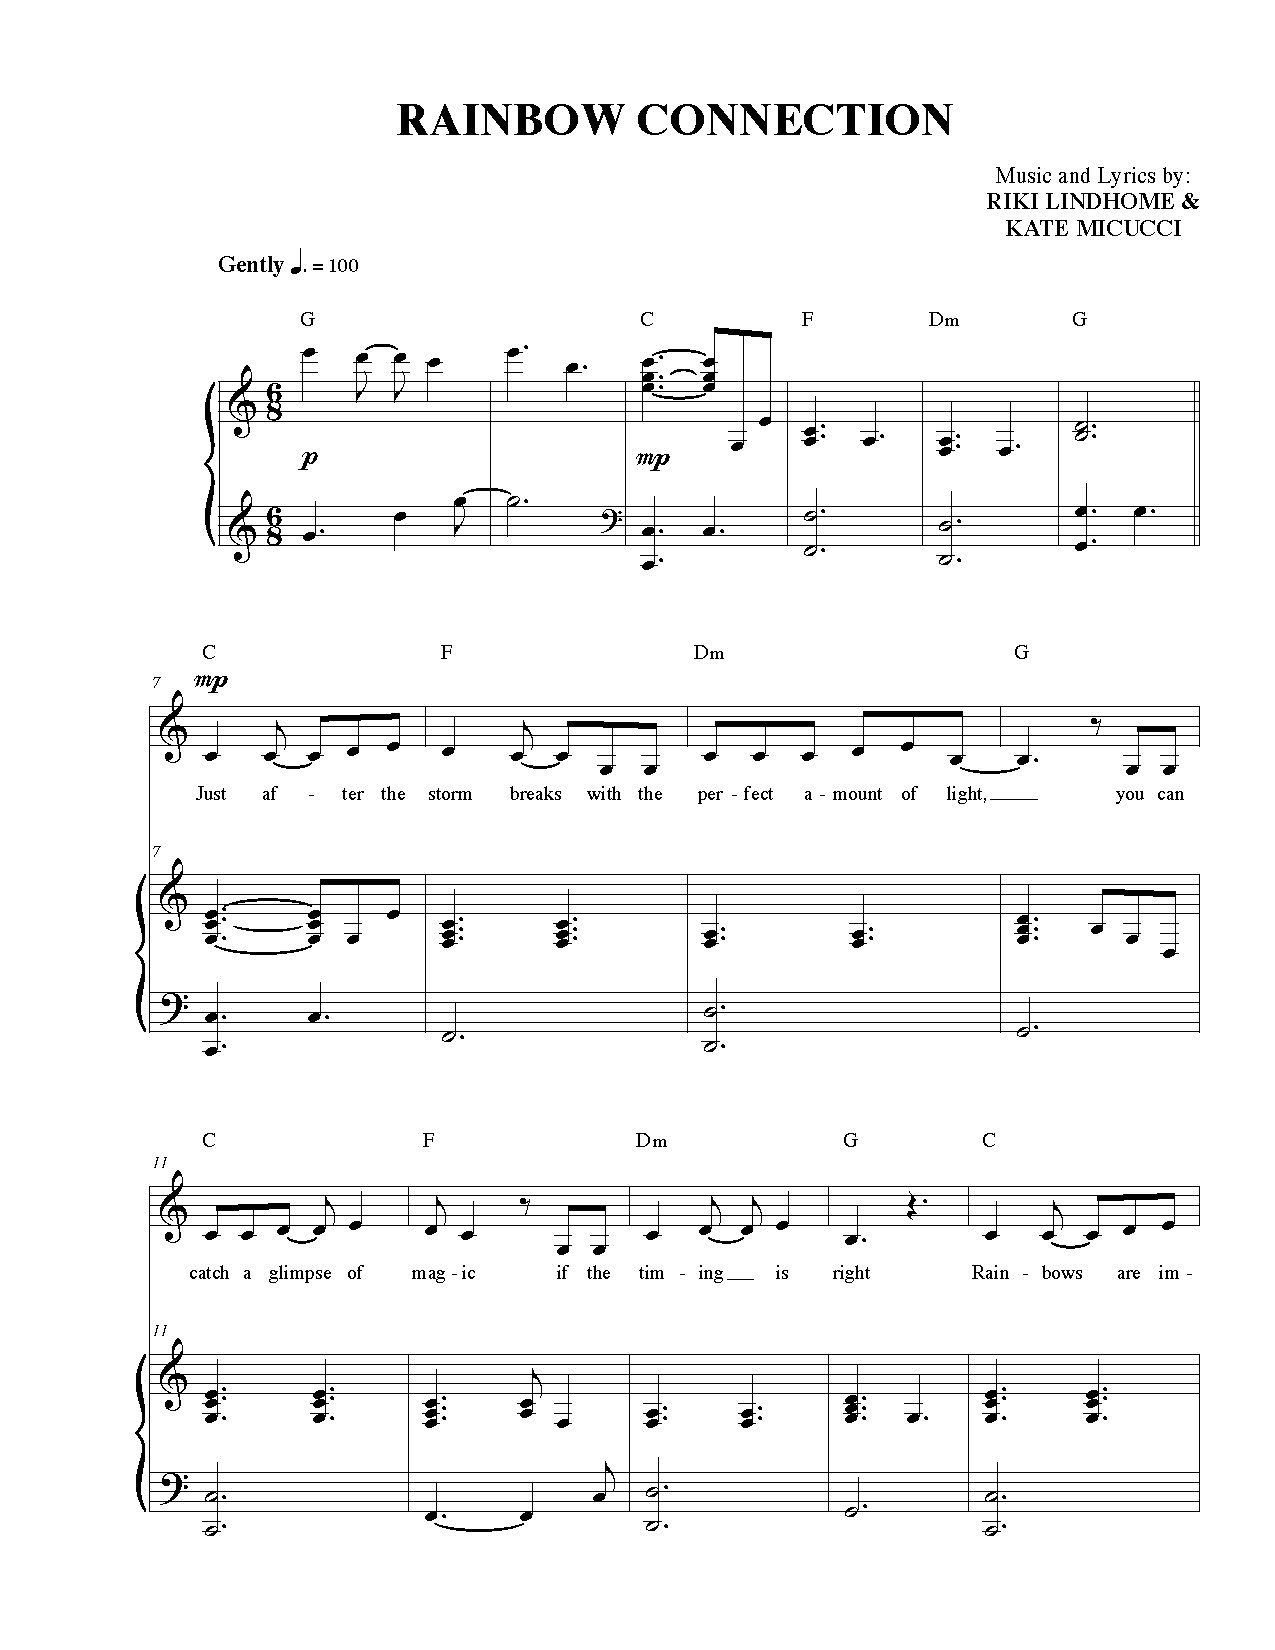 Sheet Music For Rainbow Connection Garfunkel And Oats With